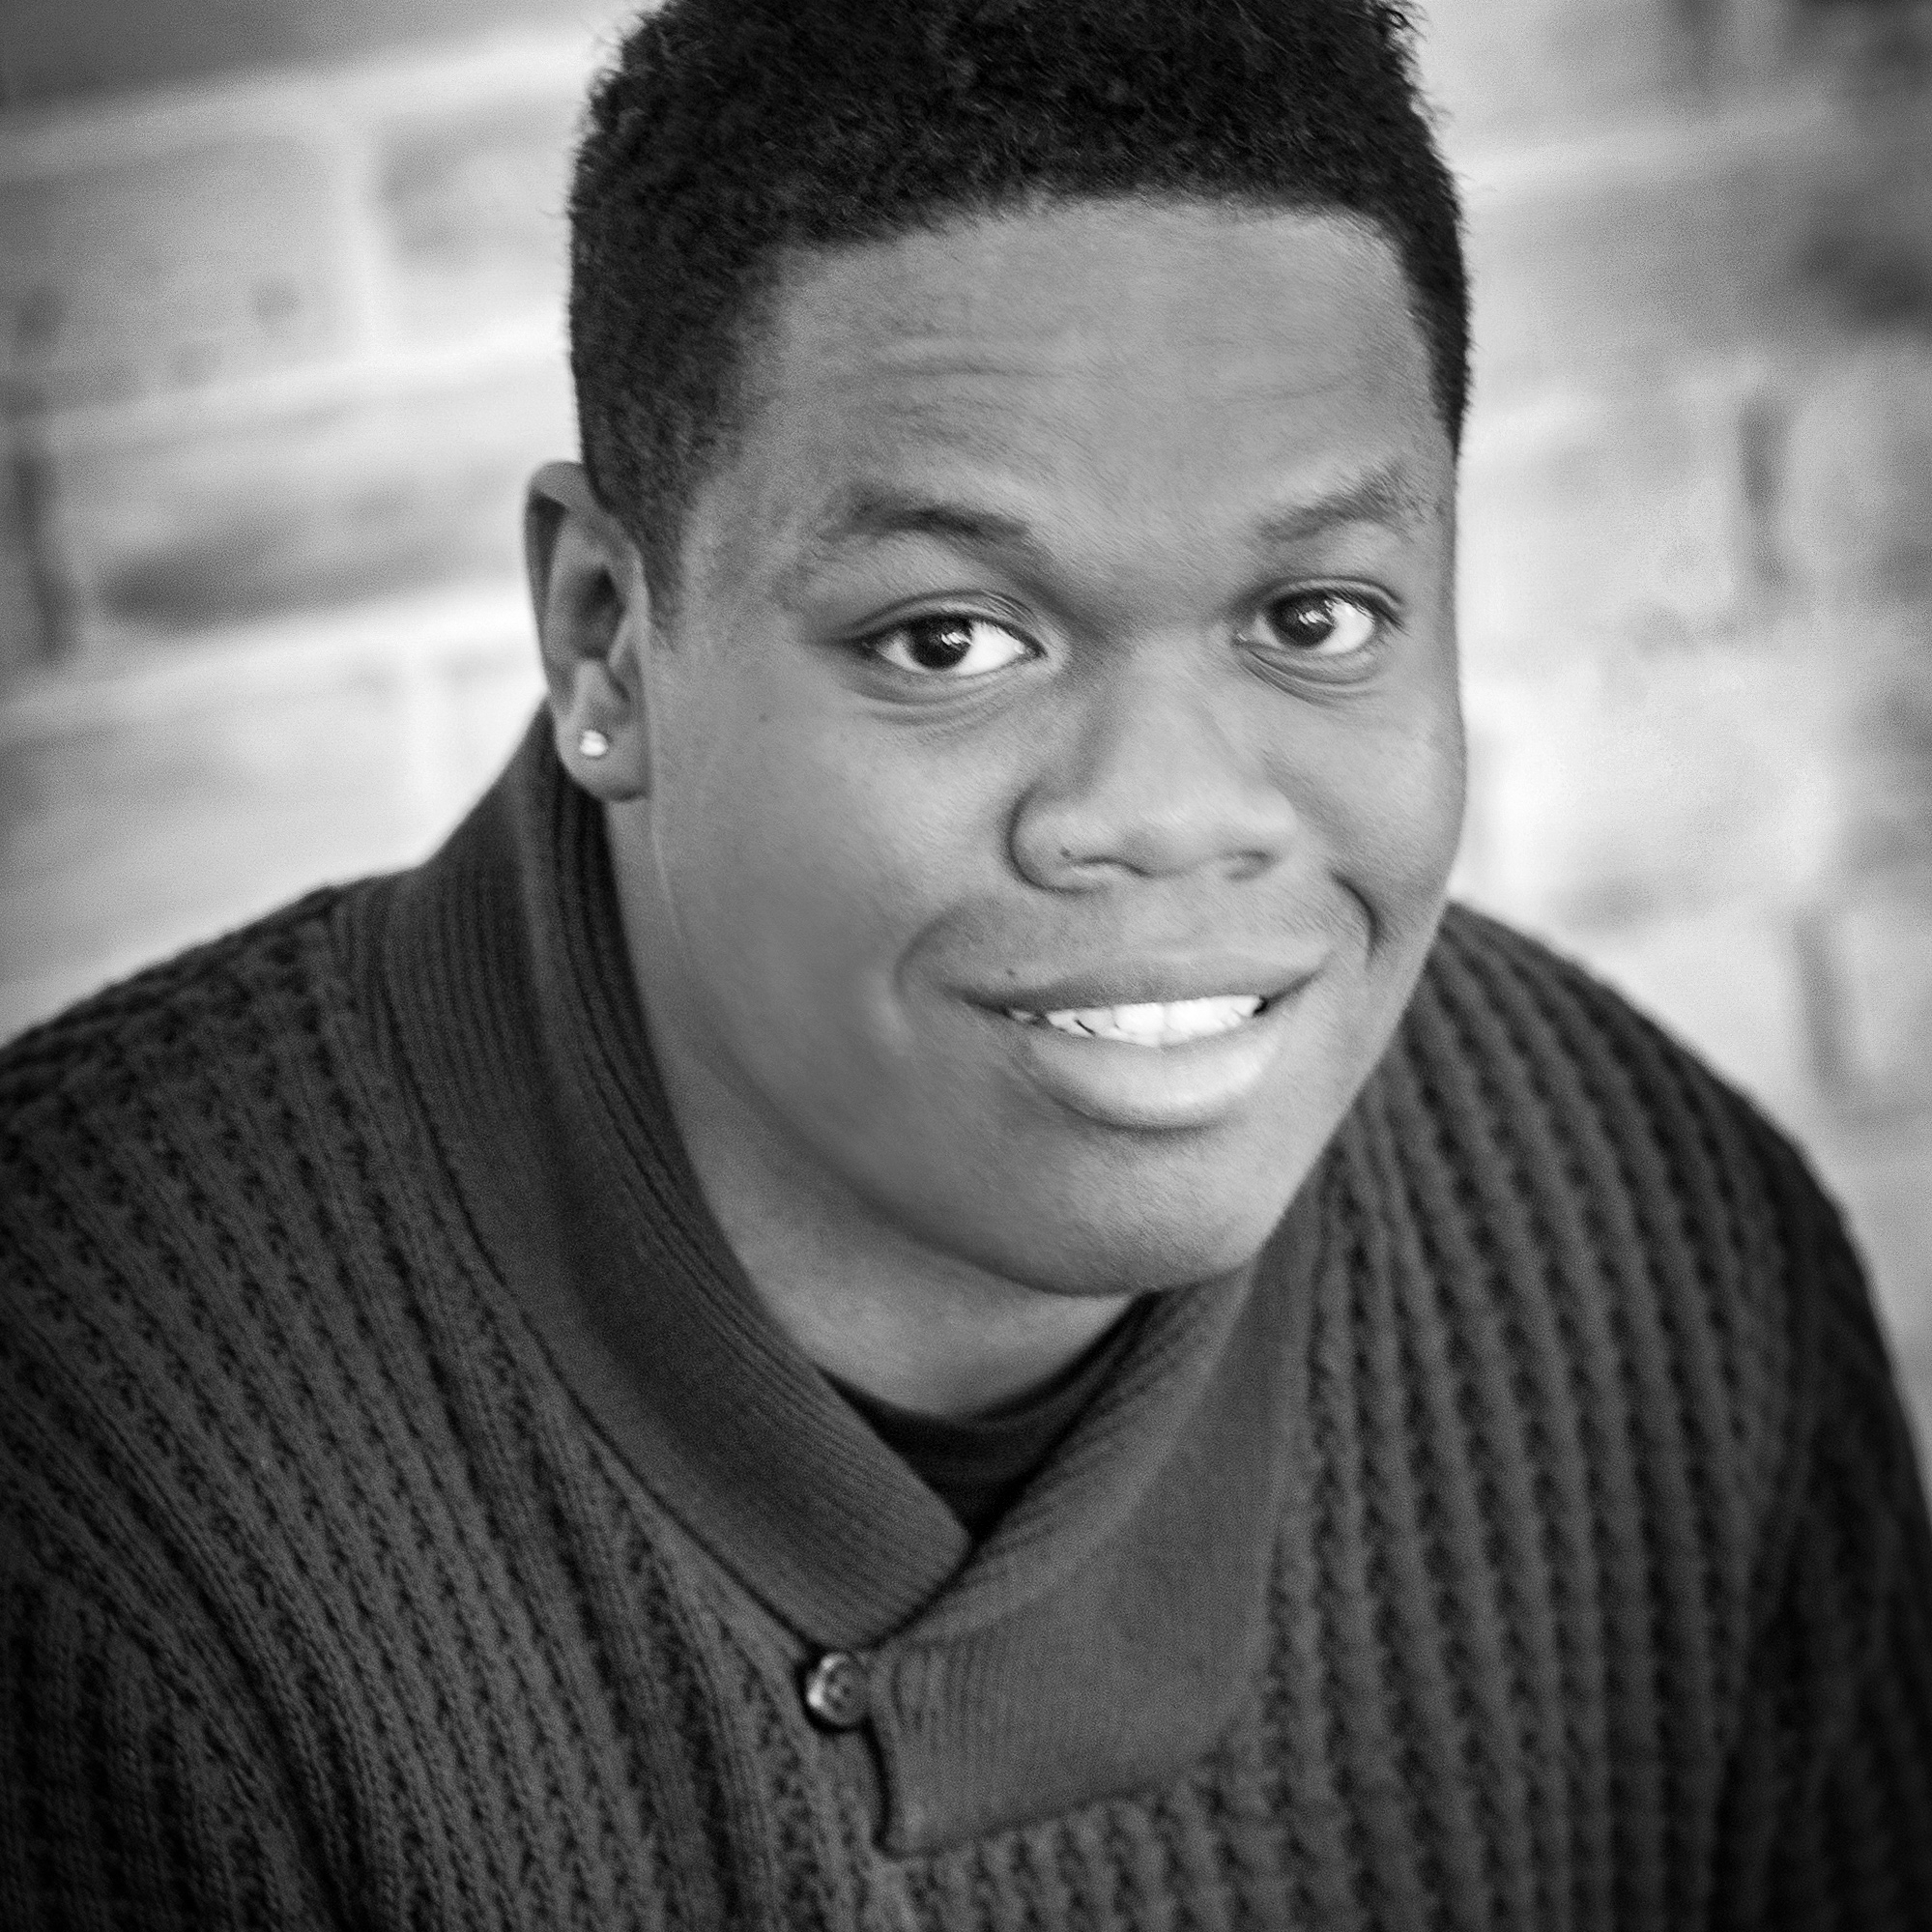 ISAIAH ALEXANDER - Ensemble - ISAIAH is a student actor from Humboldt State University and is excited to be a part of Radioman! . A Southern California native, Isaiah's previous theater performances include a stage rendition of the popular children's story Charlotte's Web, Shakespeare's tragedy, Julius Caesar, and Oscar Wilde's comedy The Importance of Being Earnest.